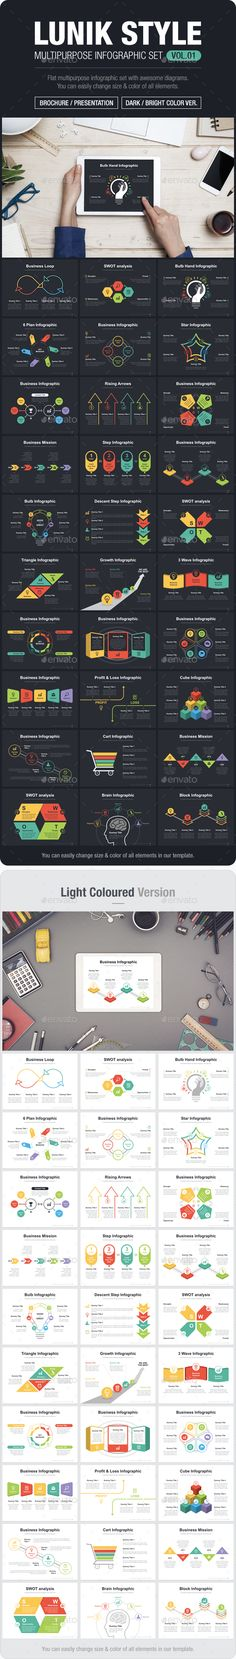 Flat Multipurpose Infographic Set With Diagrams — Vector EPS #step #swot • Available here → https://graphicriver.net/item/flat-multipurpose-infographic-set-with-diagrams/17053498?ref=pxcr